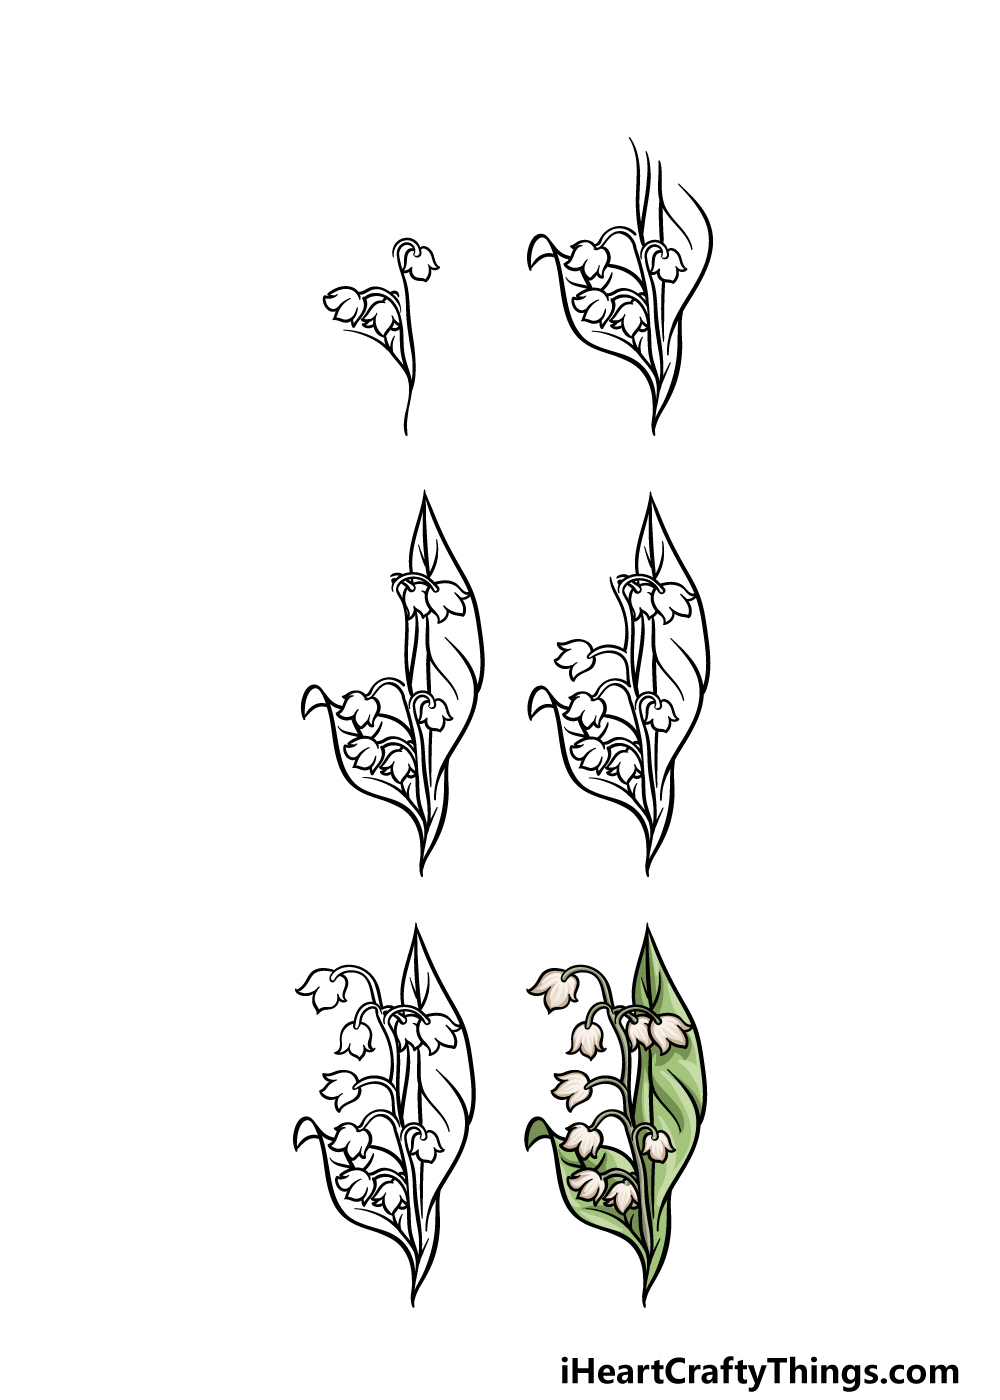 How to draw Lily of the Valley in 6 steps